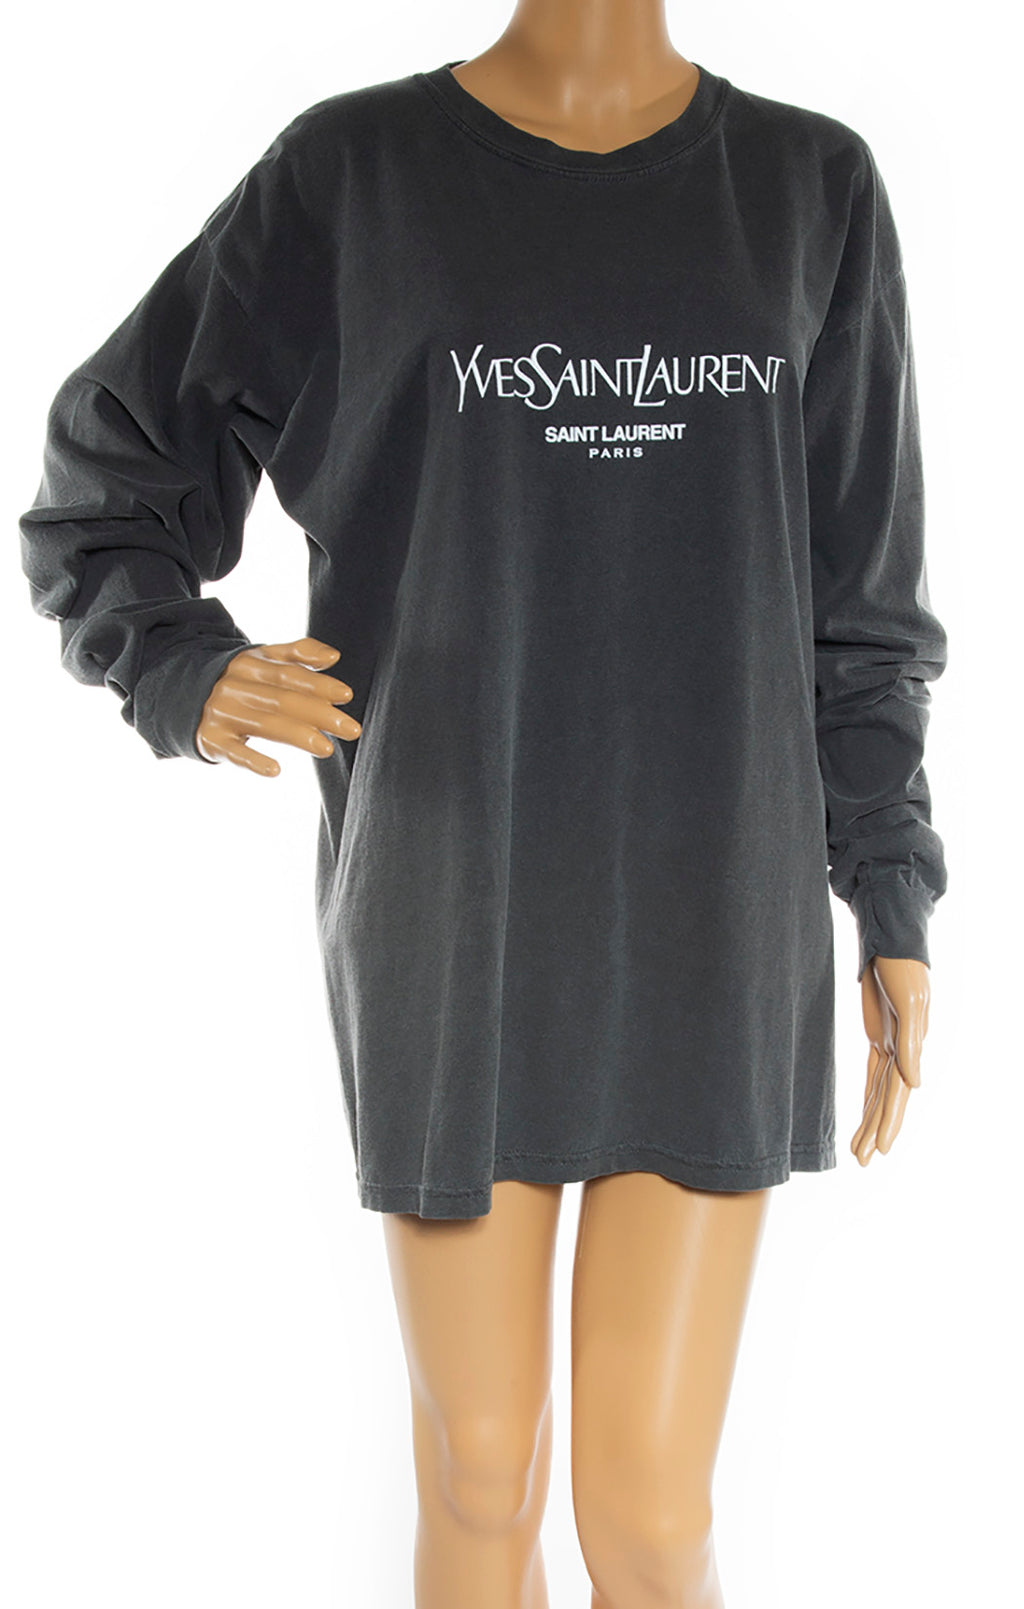 Closeup of YVES SAINT LAURENT  T-Shirt Size: No tags, fits like Medium